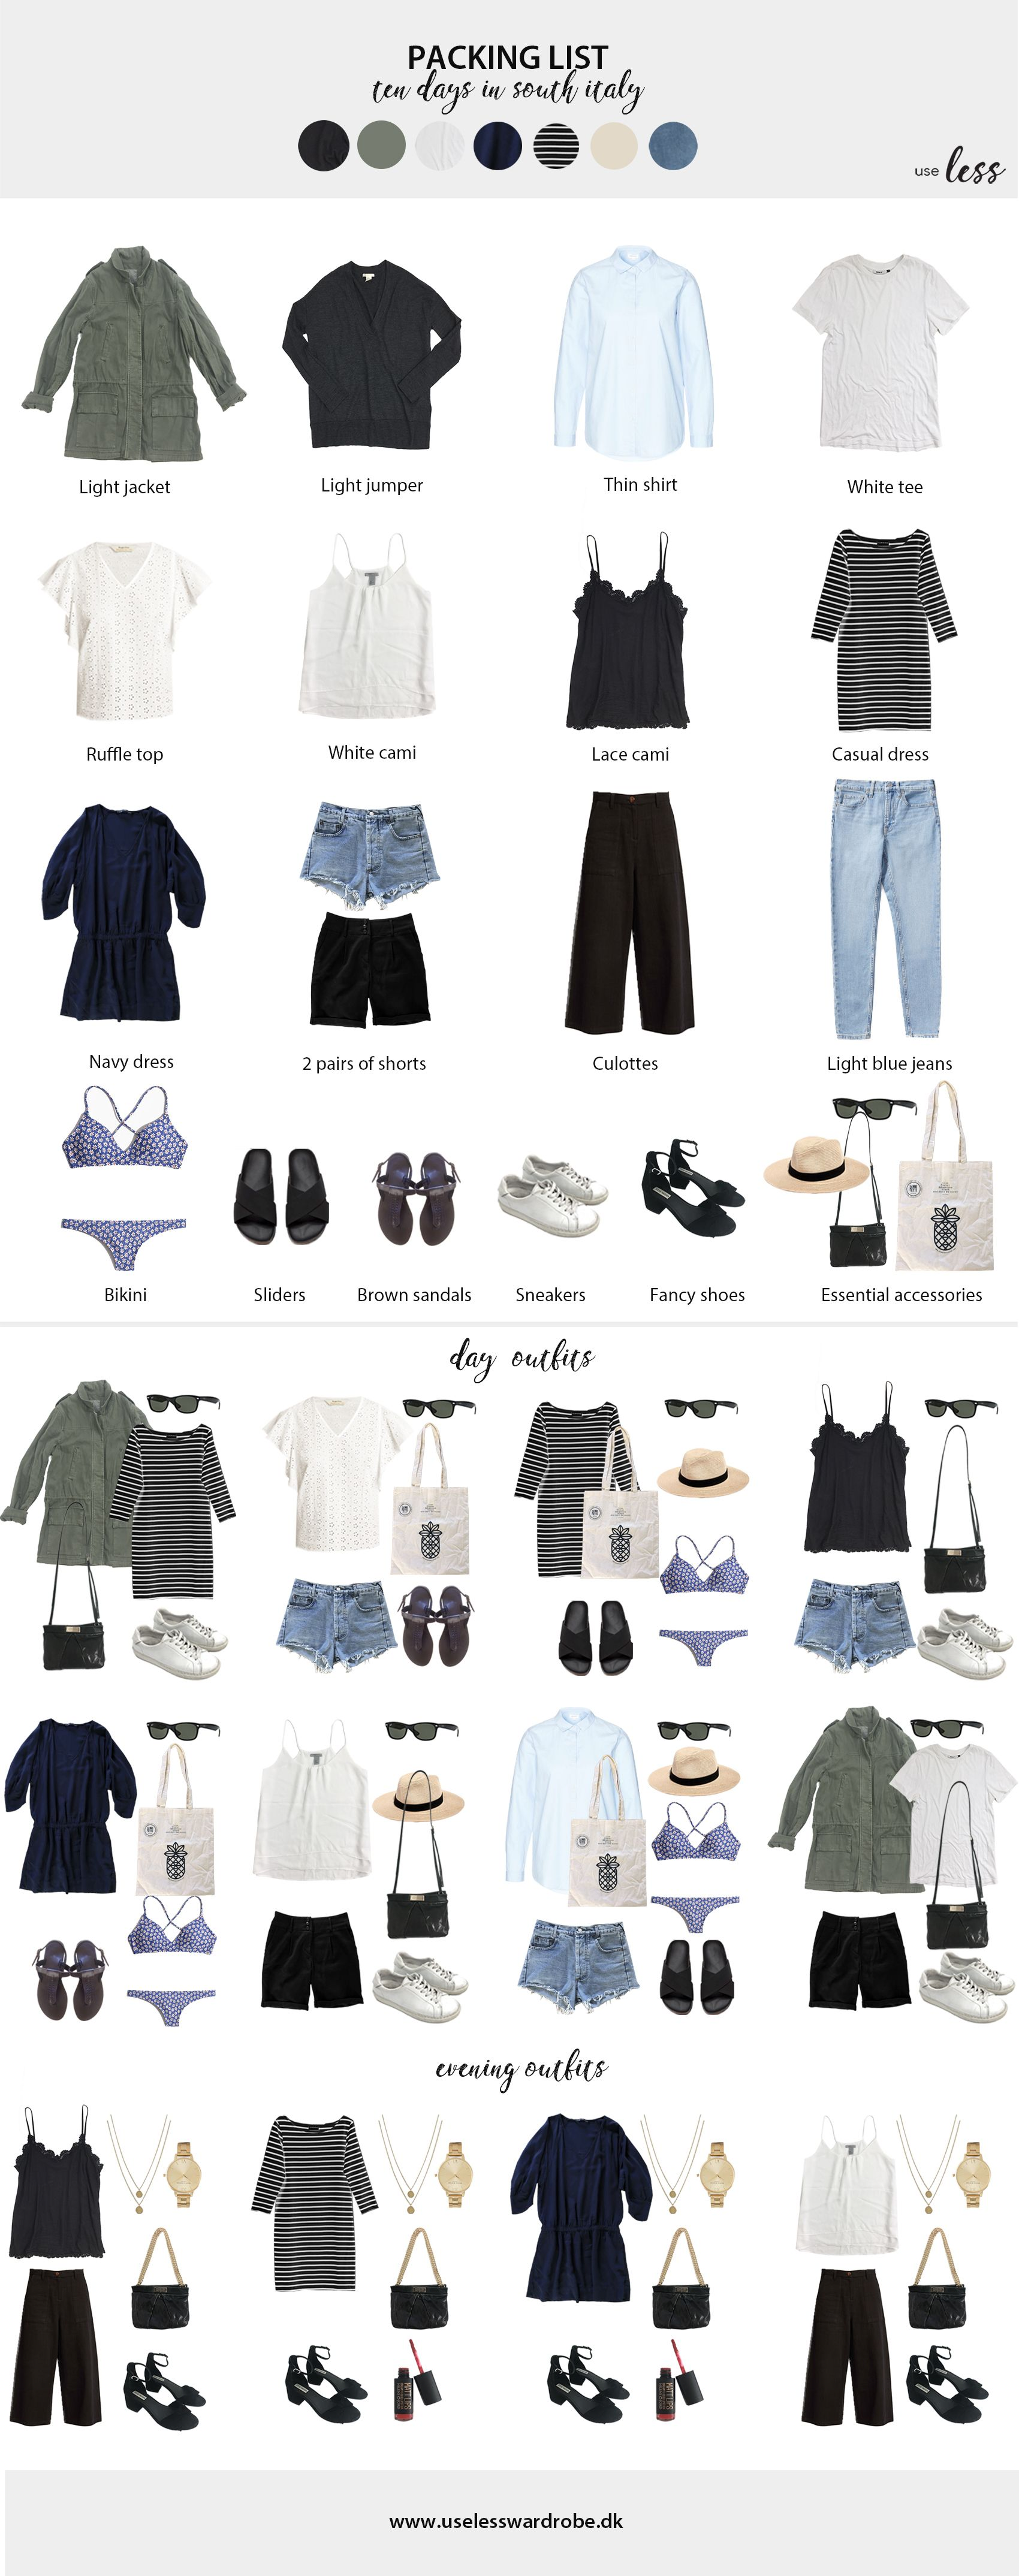 Packing light for a ten day summer trip in South Italy - july 2018. #minimalist #packing #list #minimalism #capsule #travelcapsule #travelwardrobesummer